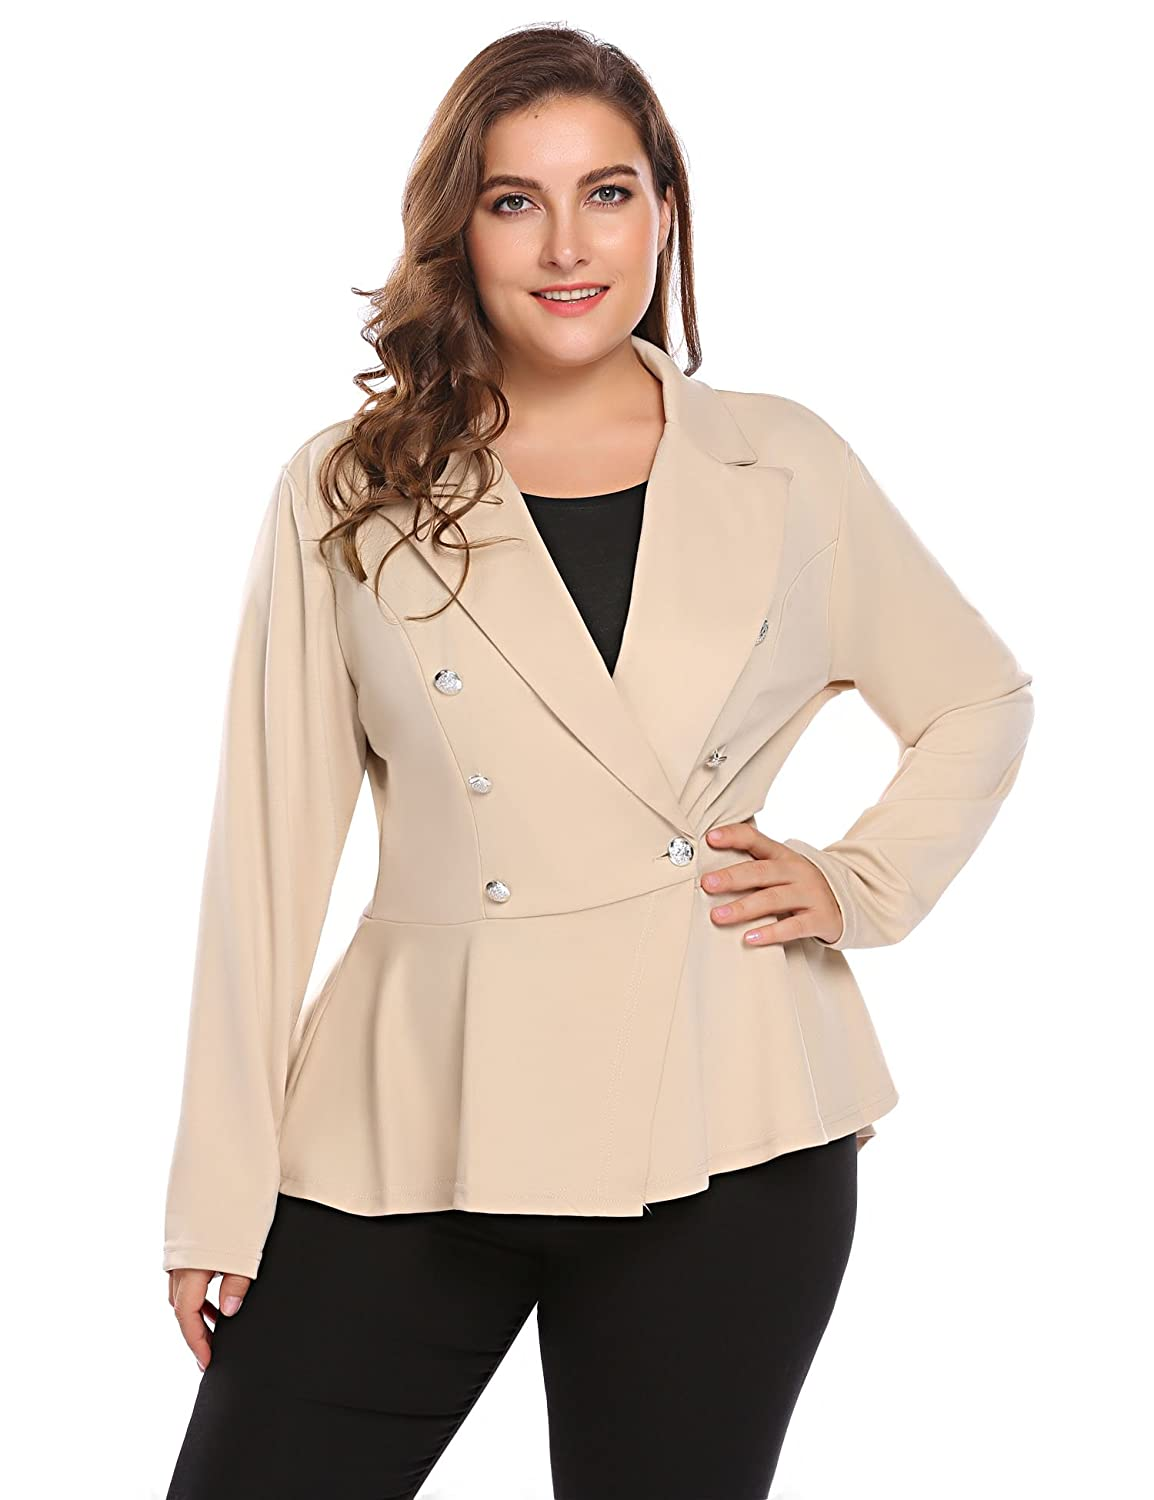 Involand Womens Plus Size Long Sleeve Open Front Work Office Casual Blazer Jacket INH023760